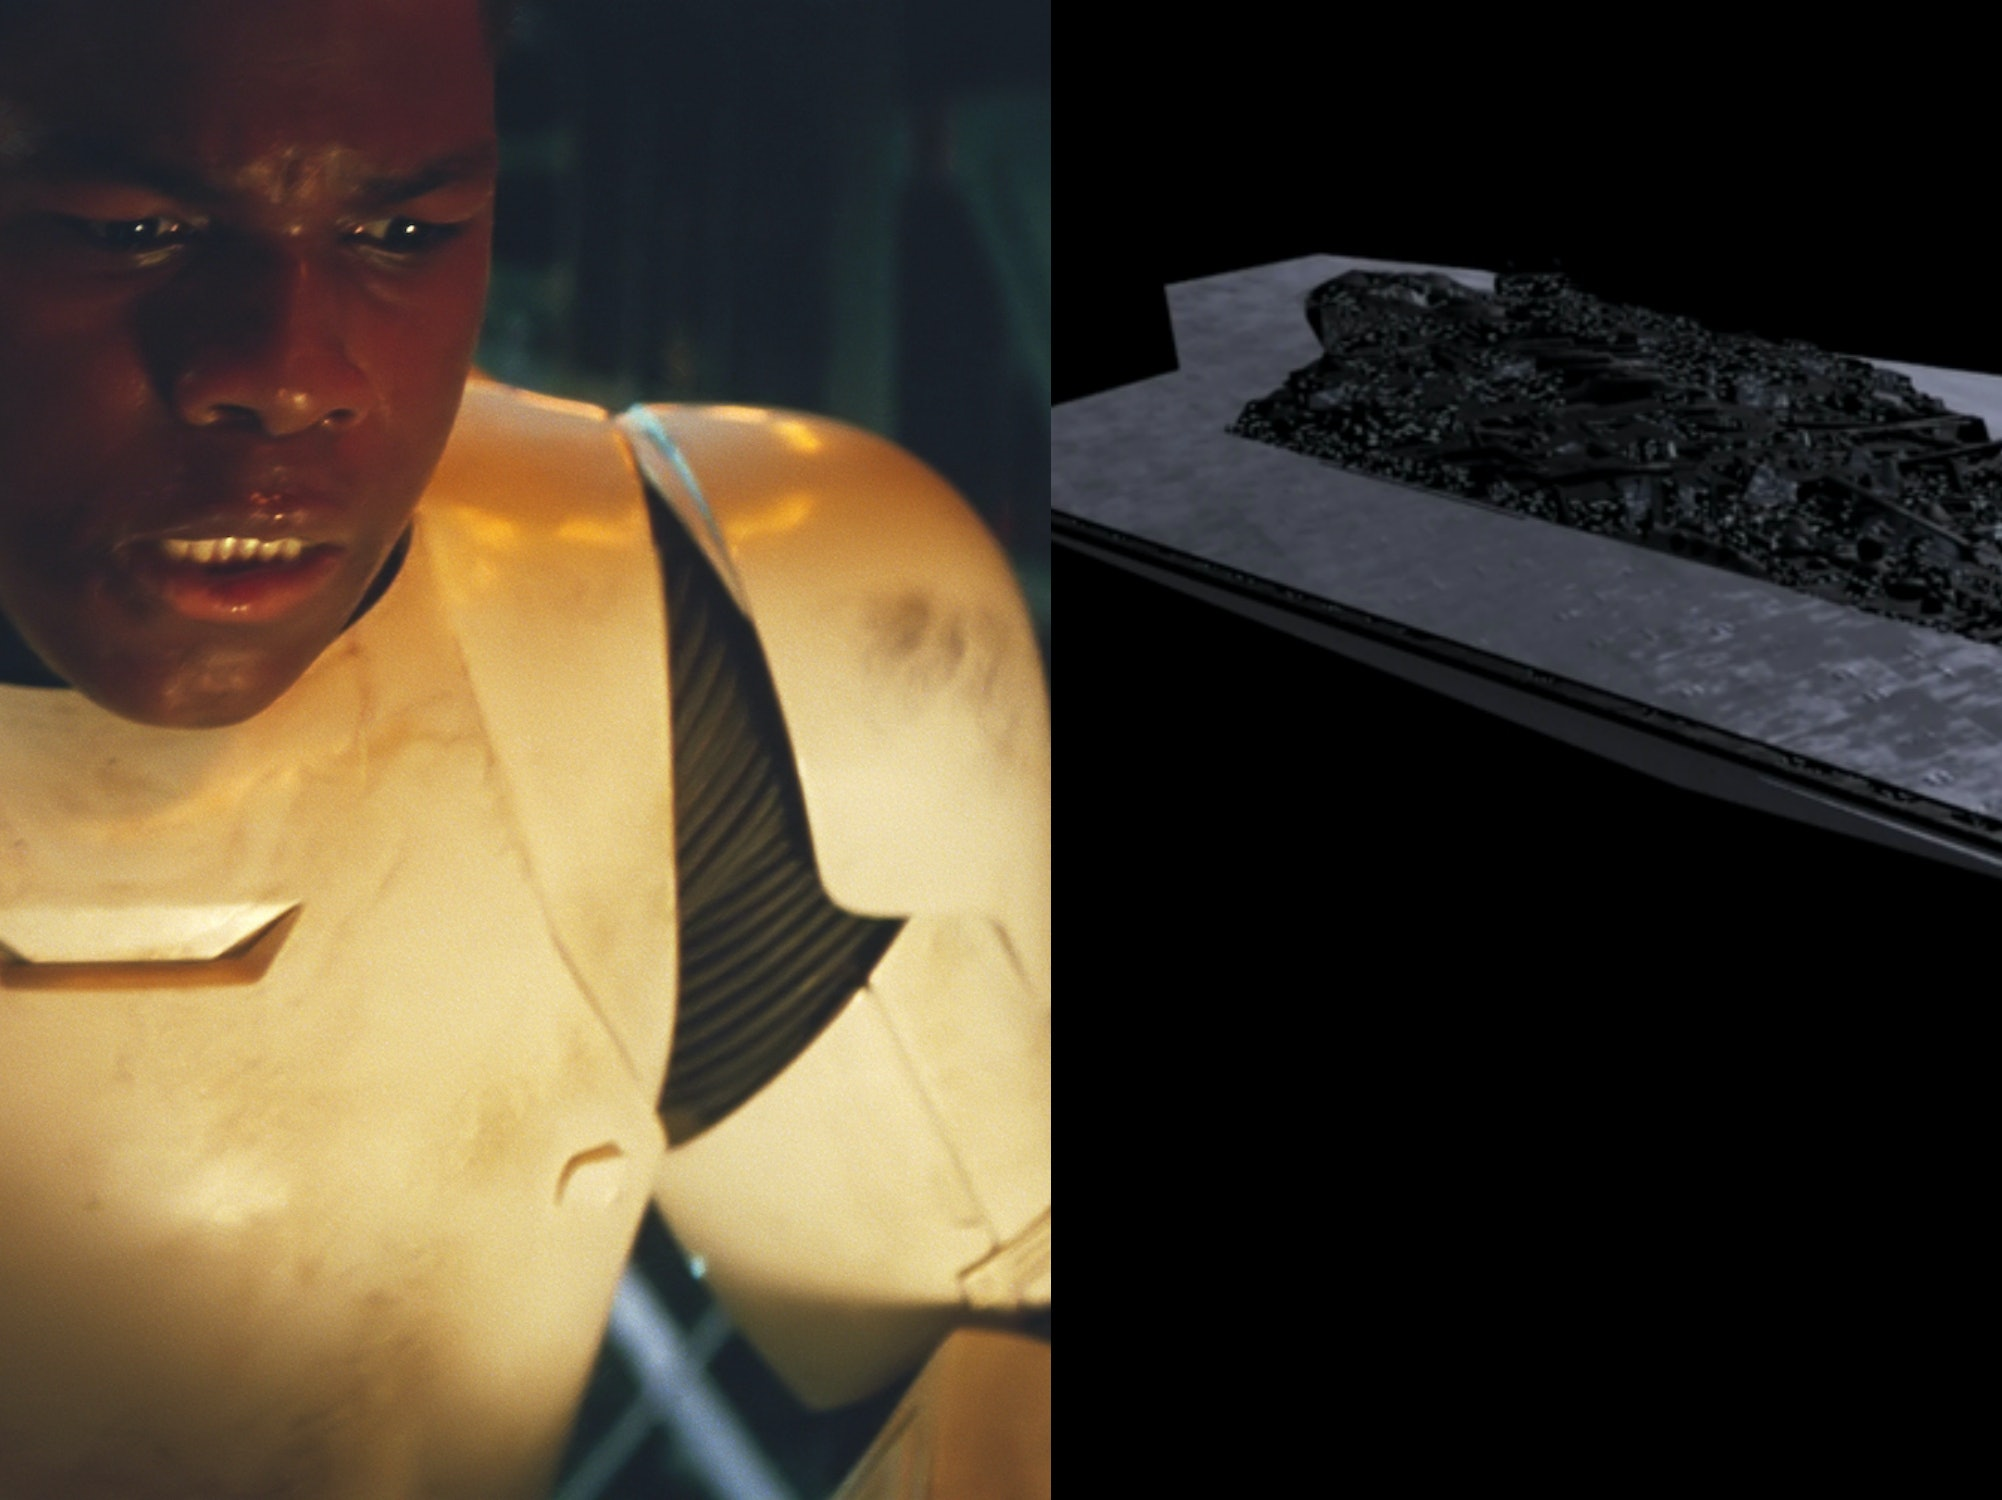 Finn's 'Last Jedi' Mission Means the Return of the Super Star Destroyer